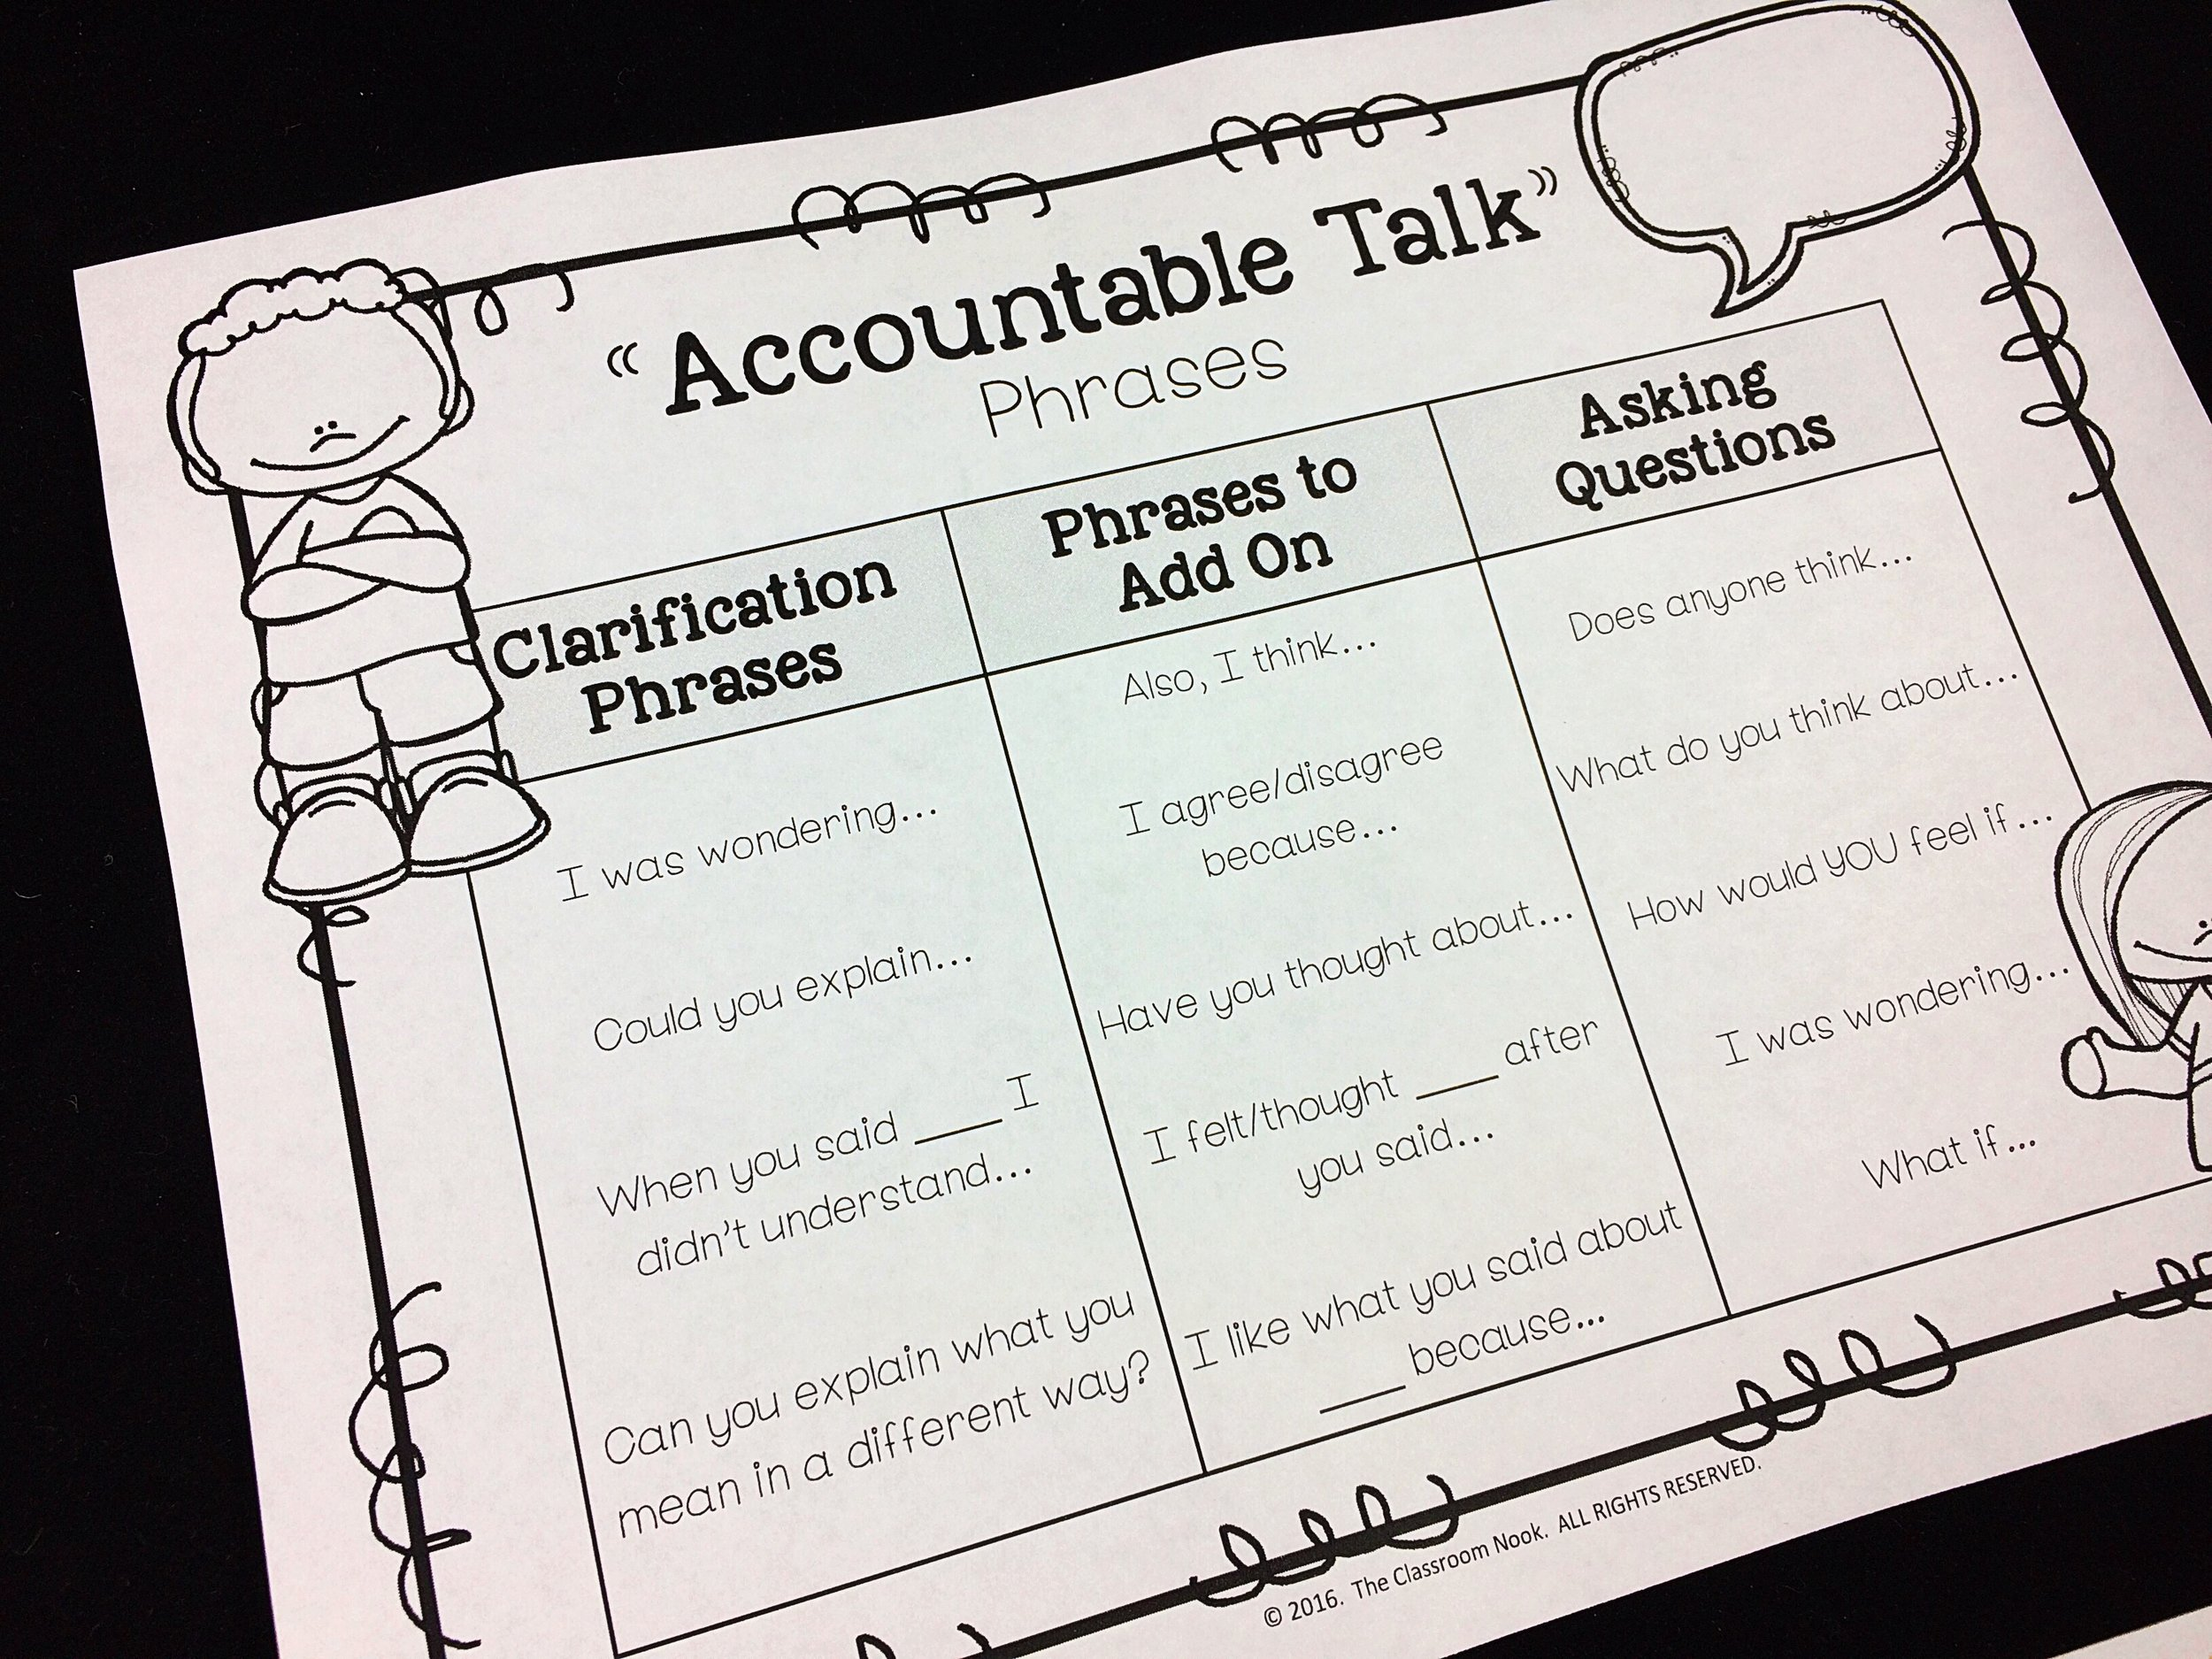 Students can create their own reference sheet for types of phrases to use when using accountable talk